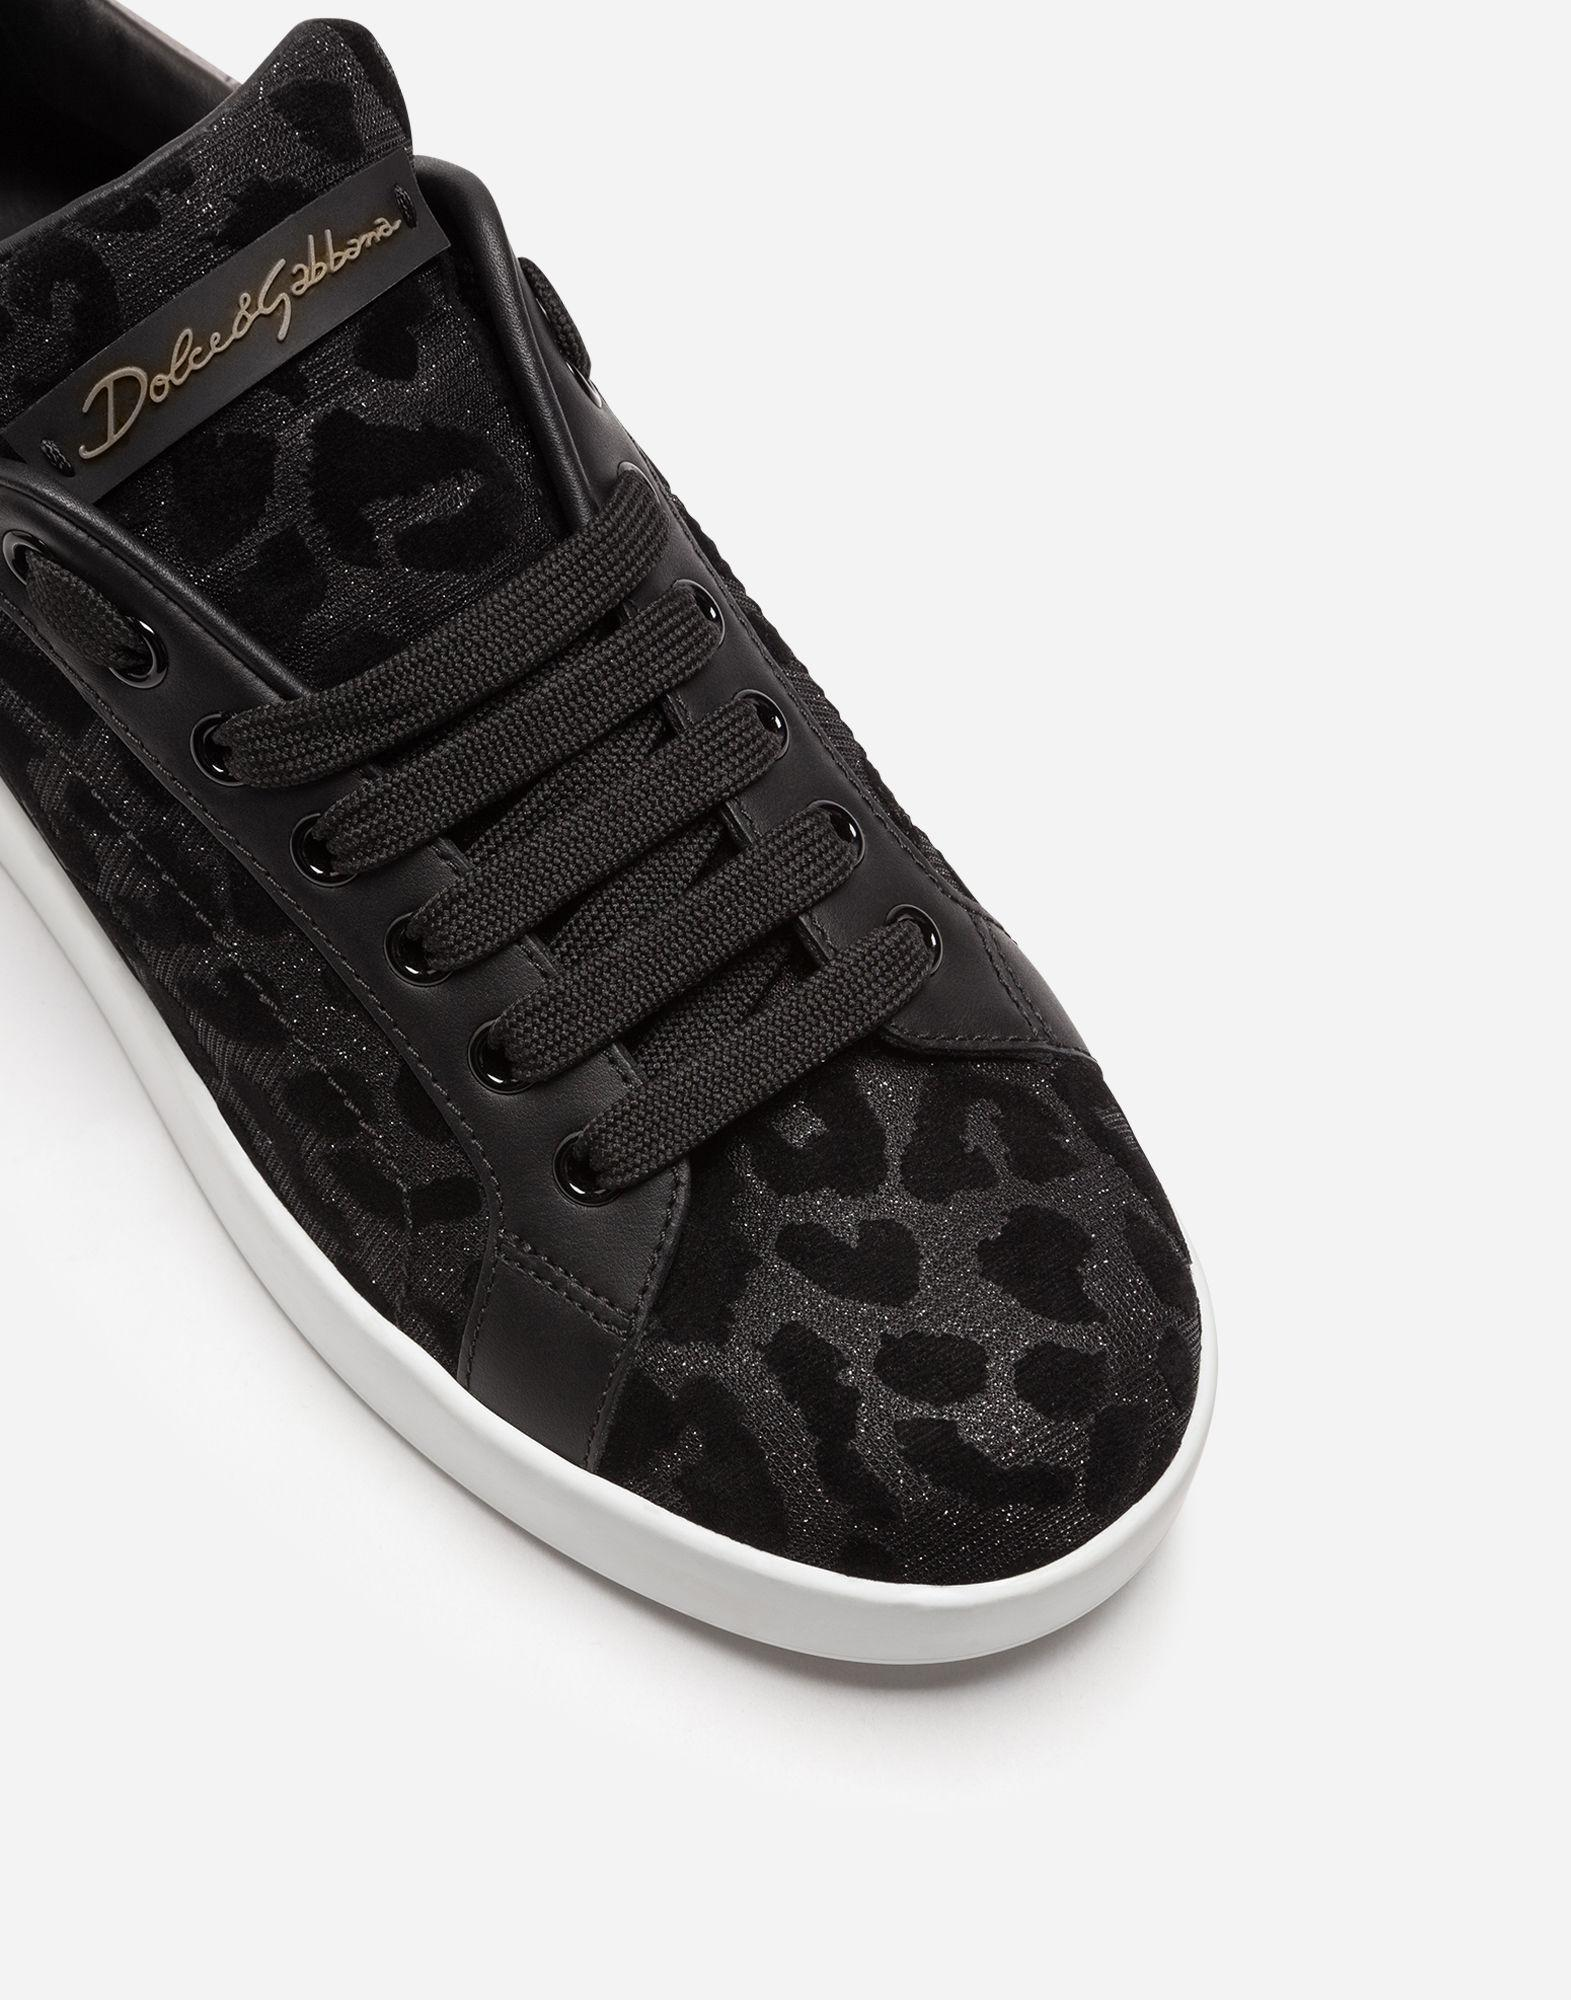 5c59e60176fe Dolce & Gabbana Portofino Sneakers In Color-changing Leopard Fabric ...